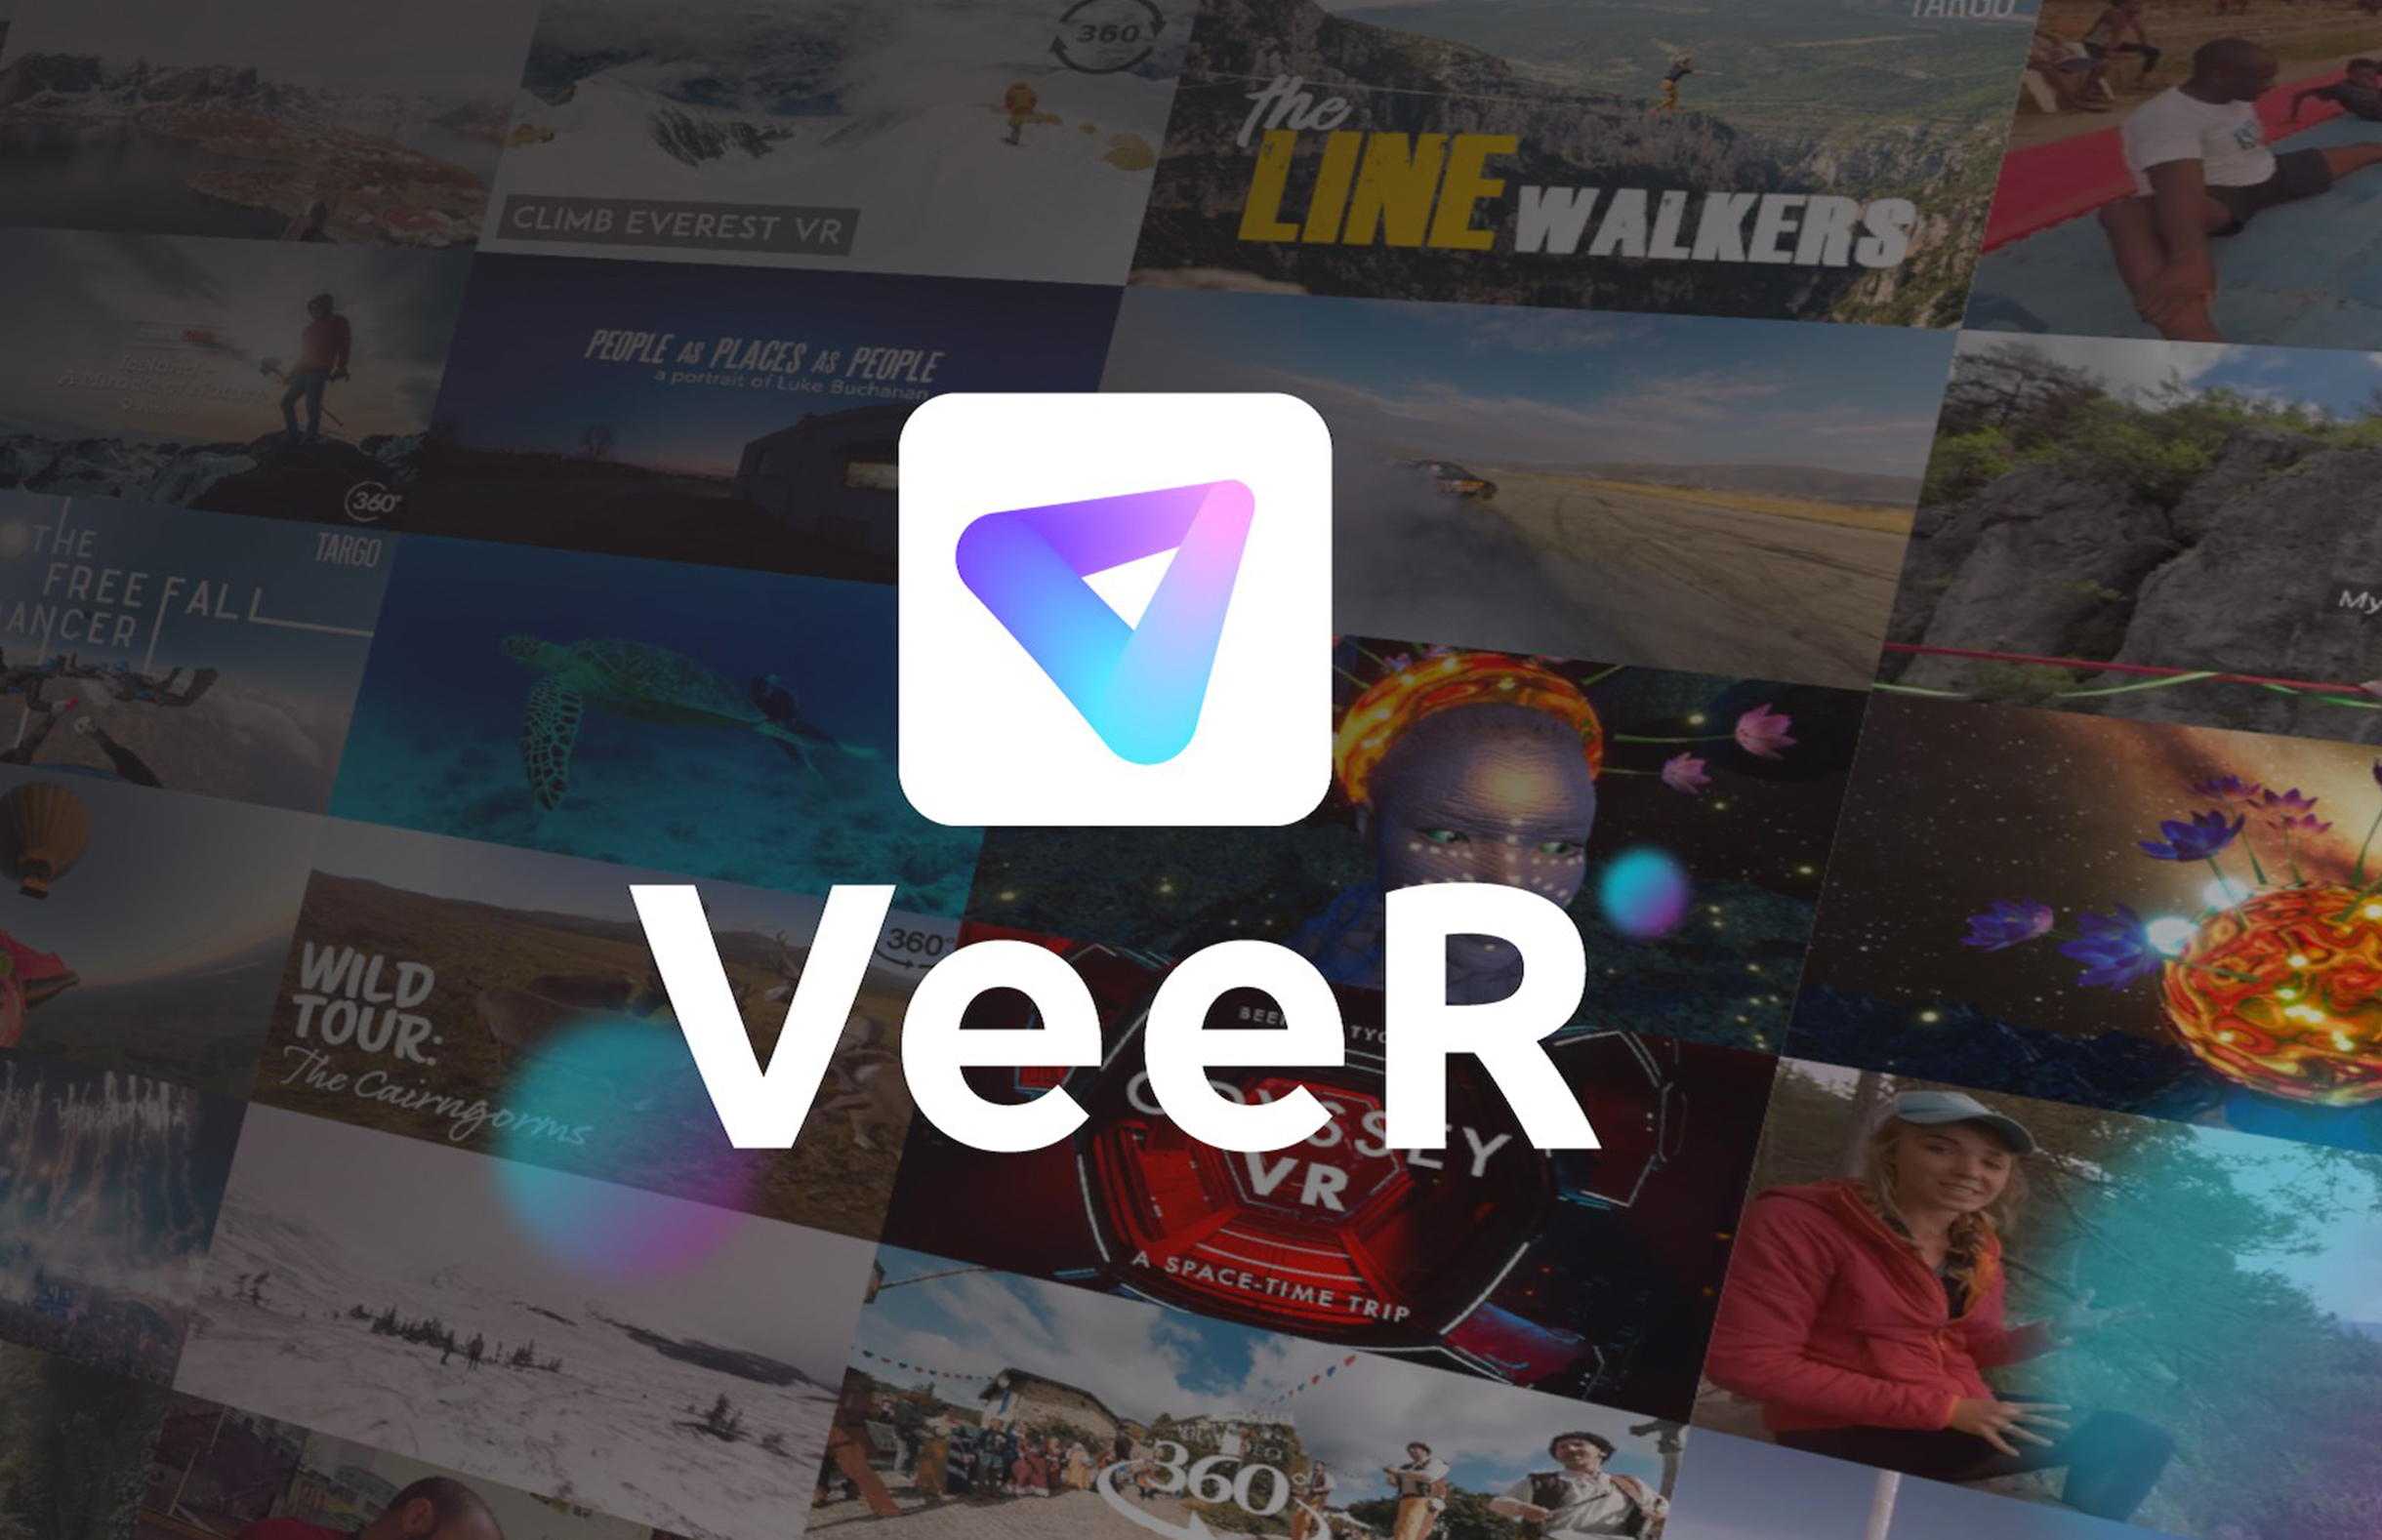 LR entered into a distribution agreement with VeeR